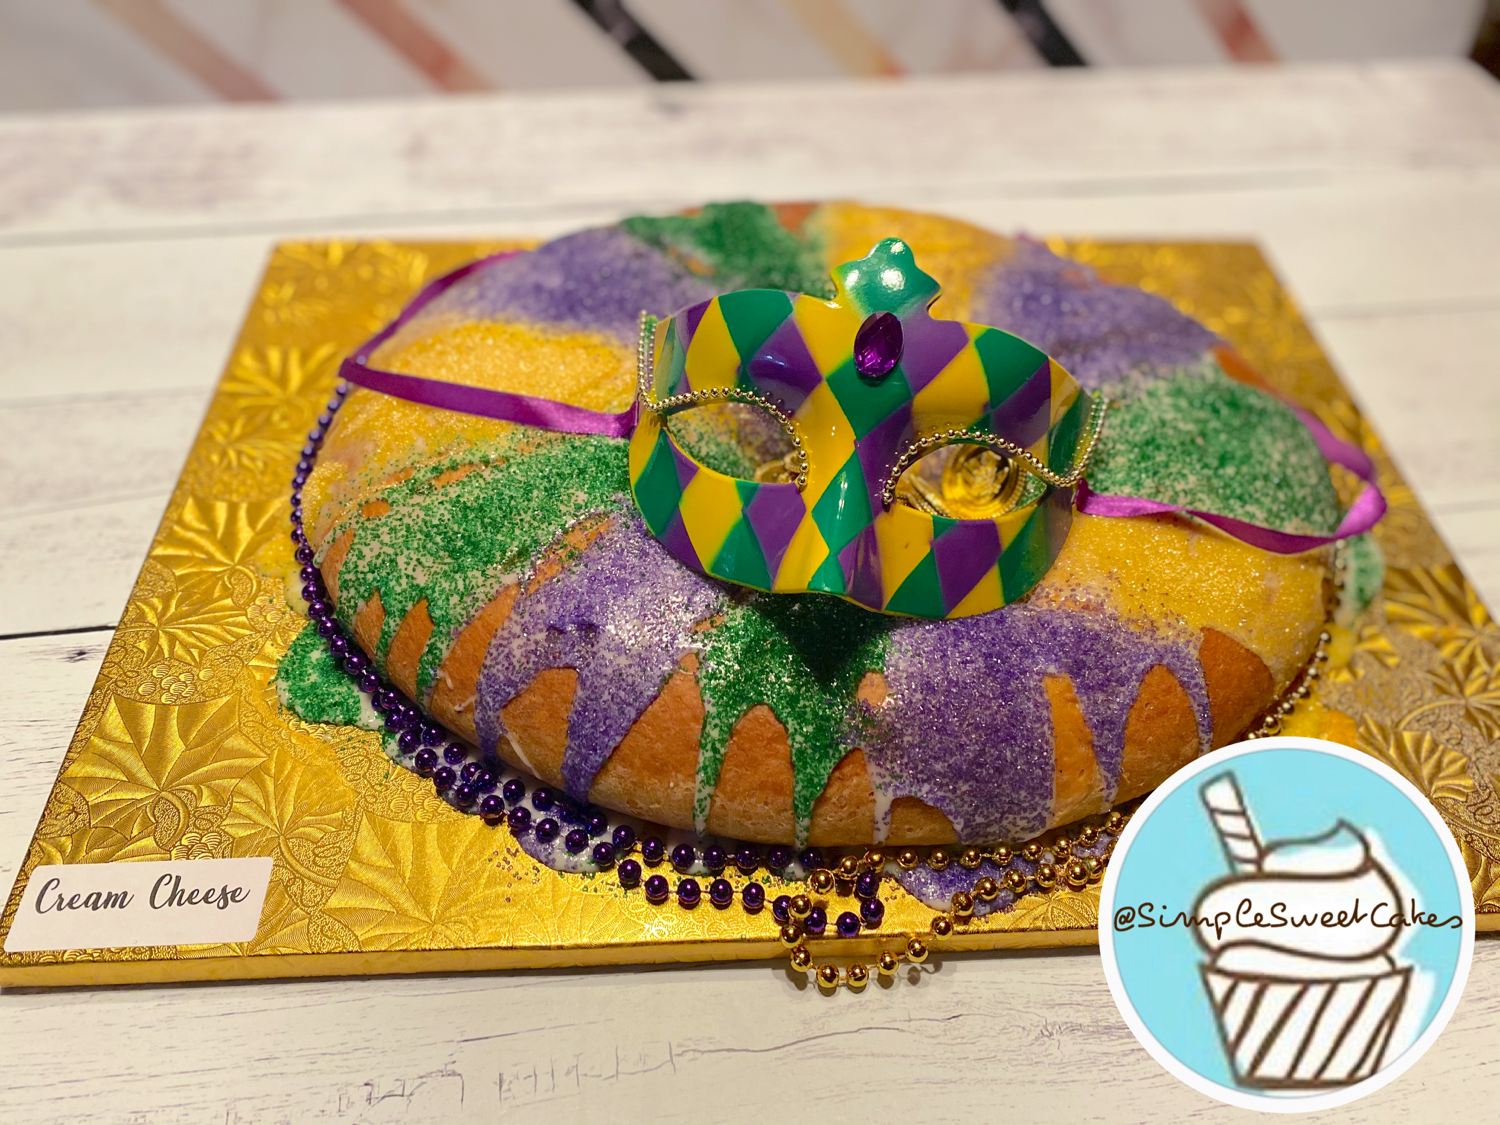 Cream Cheese - King Cake